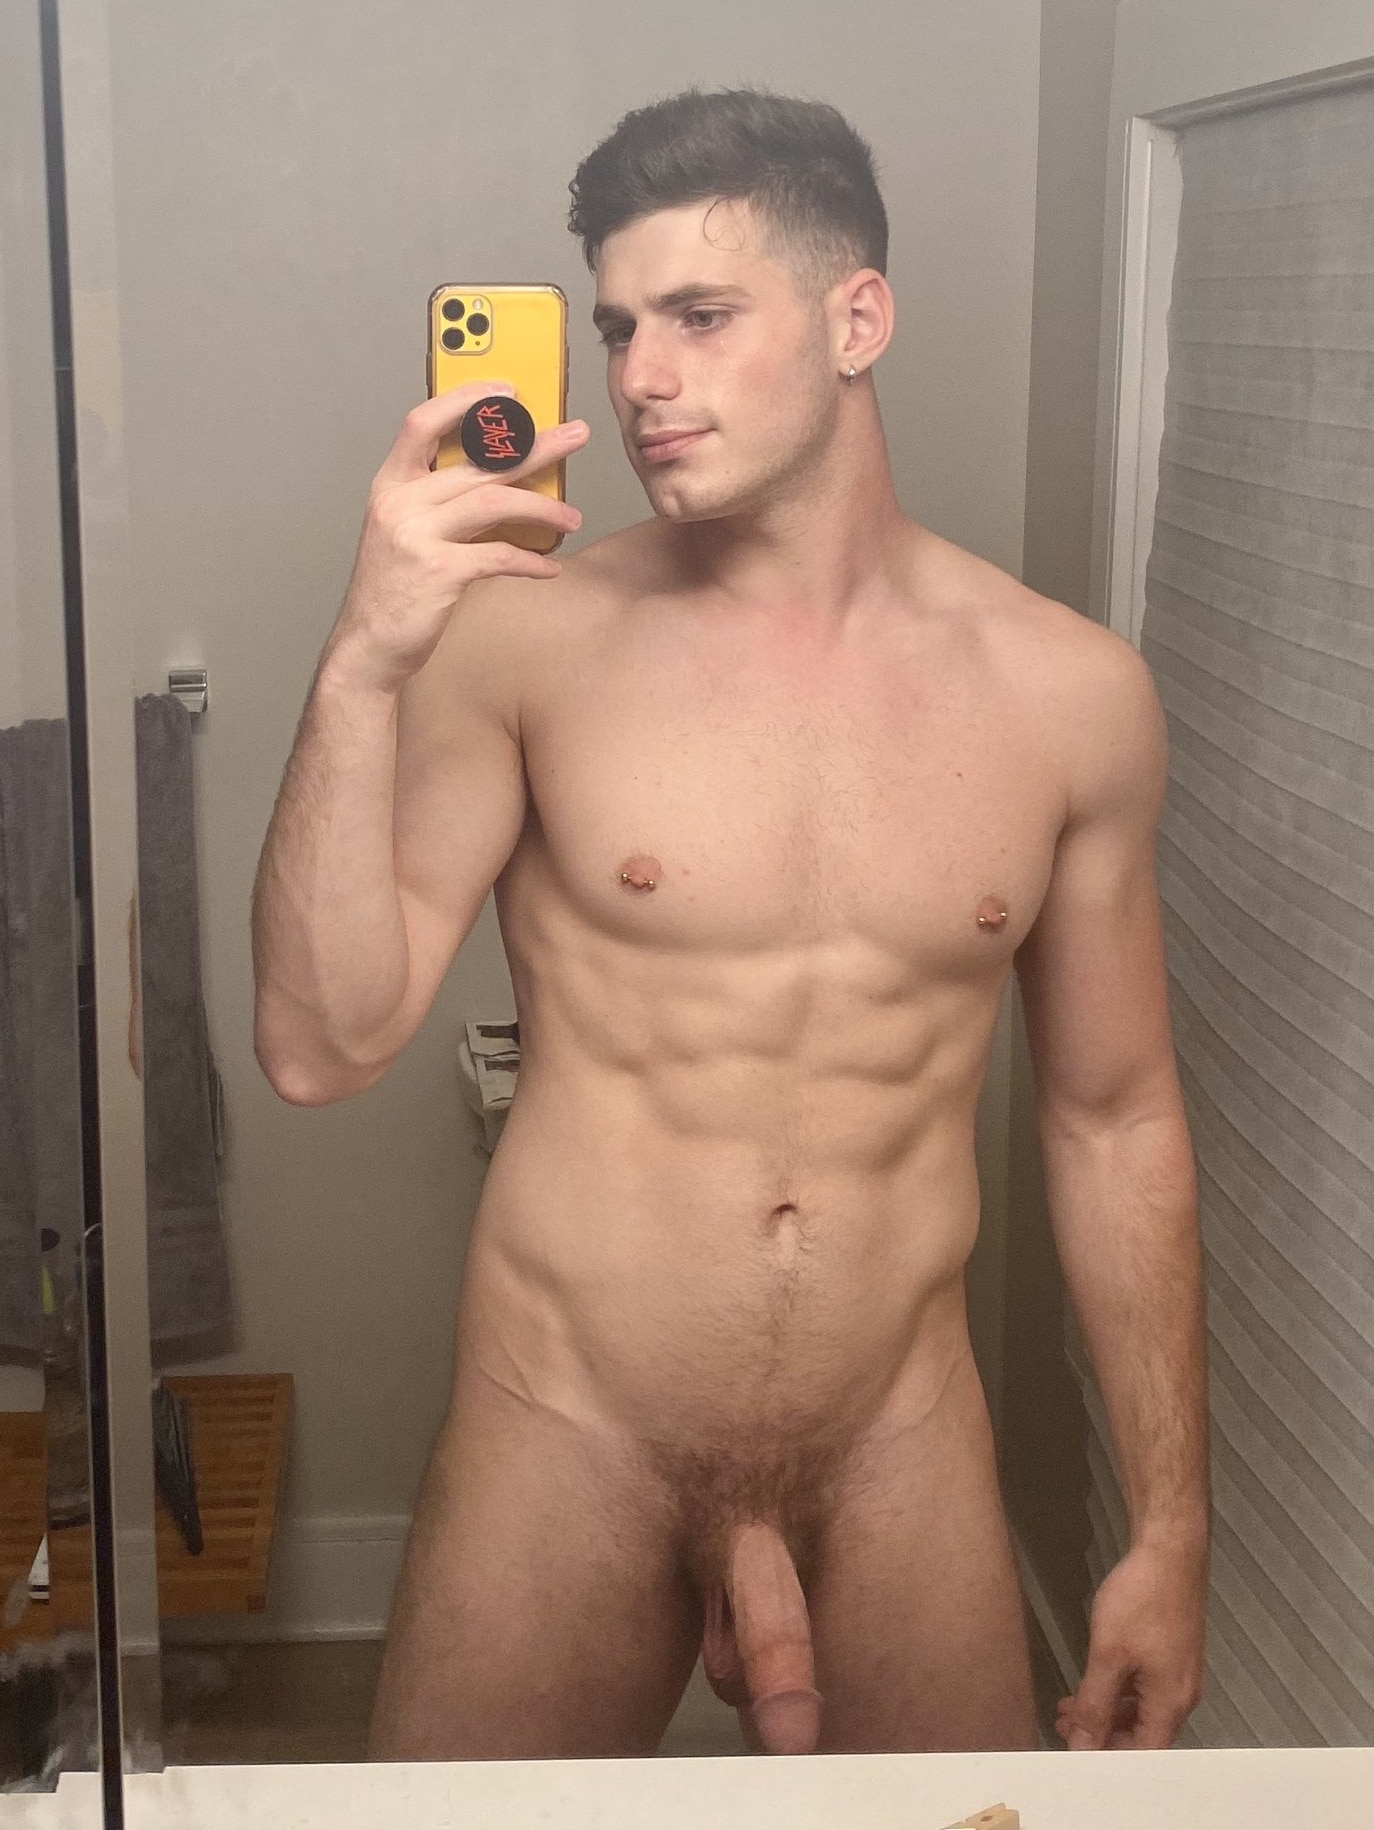 Nice muscles on this guy